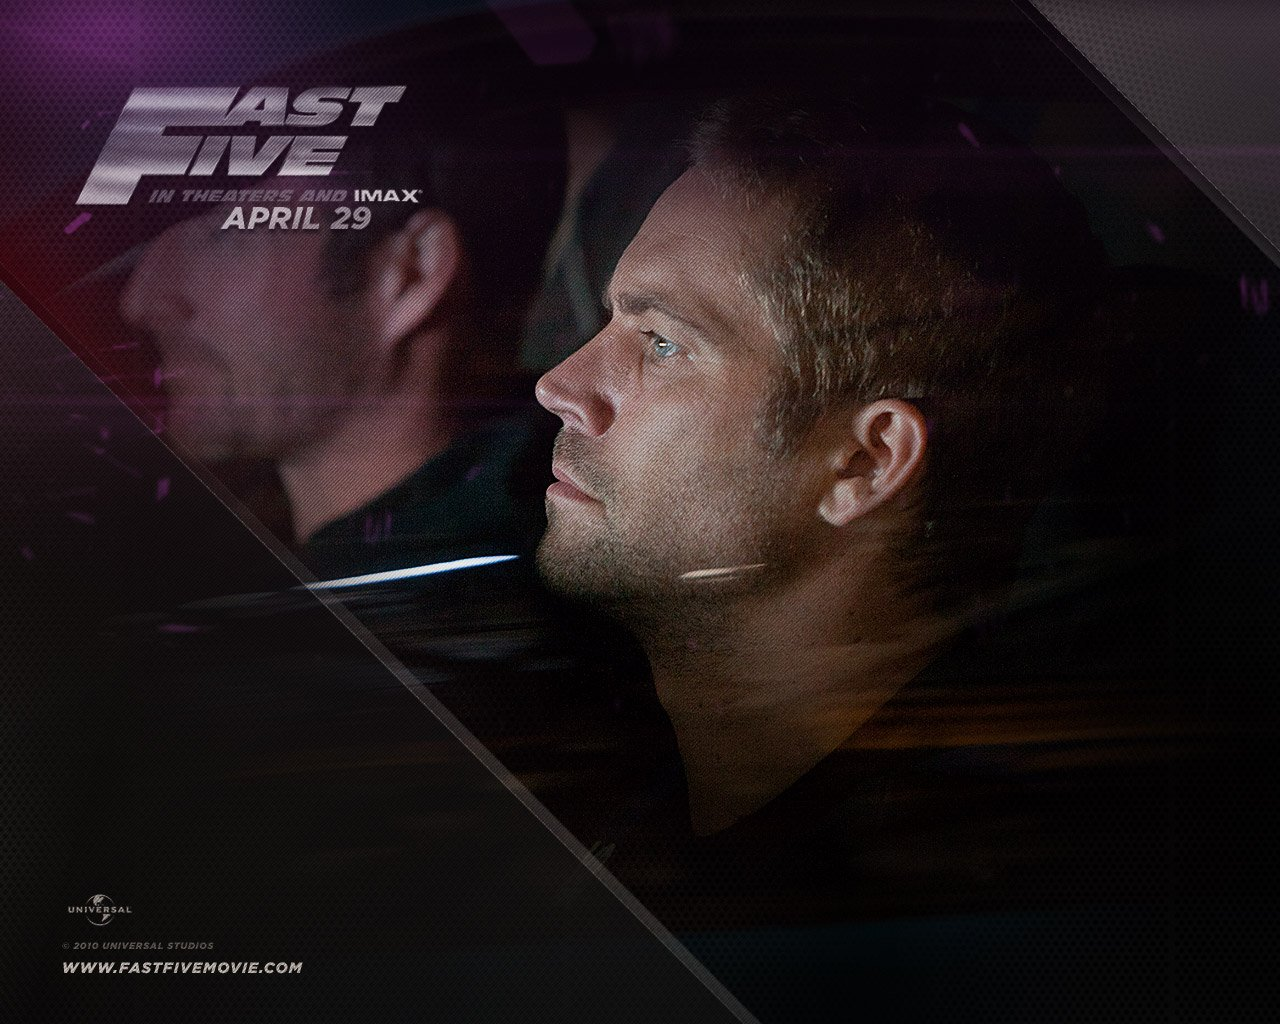 Fast Five Latest Trailer and Wallpapers Paul Walker in Fast Five 1280x1024